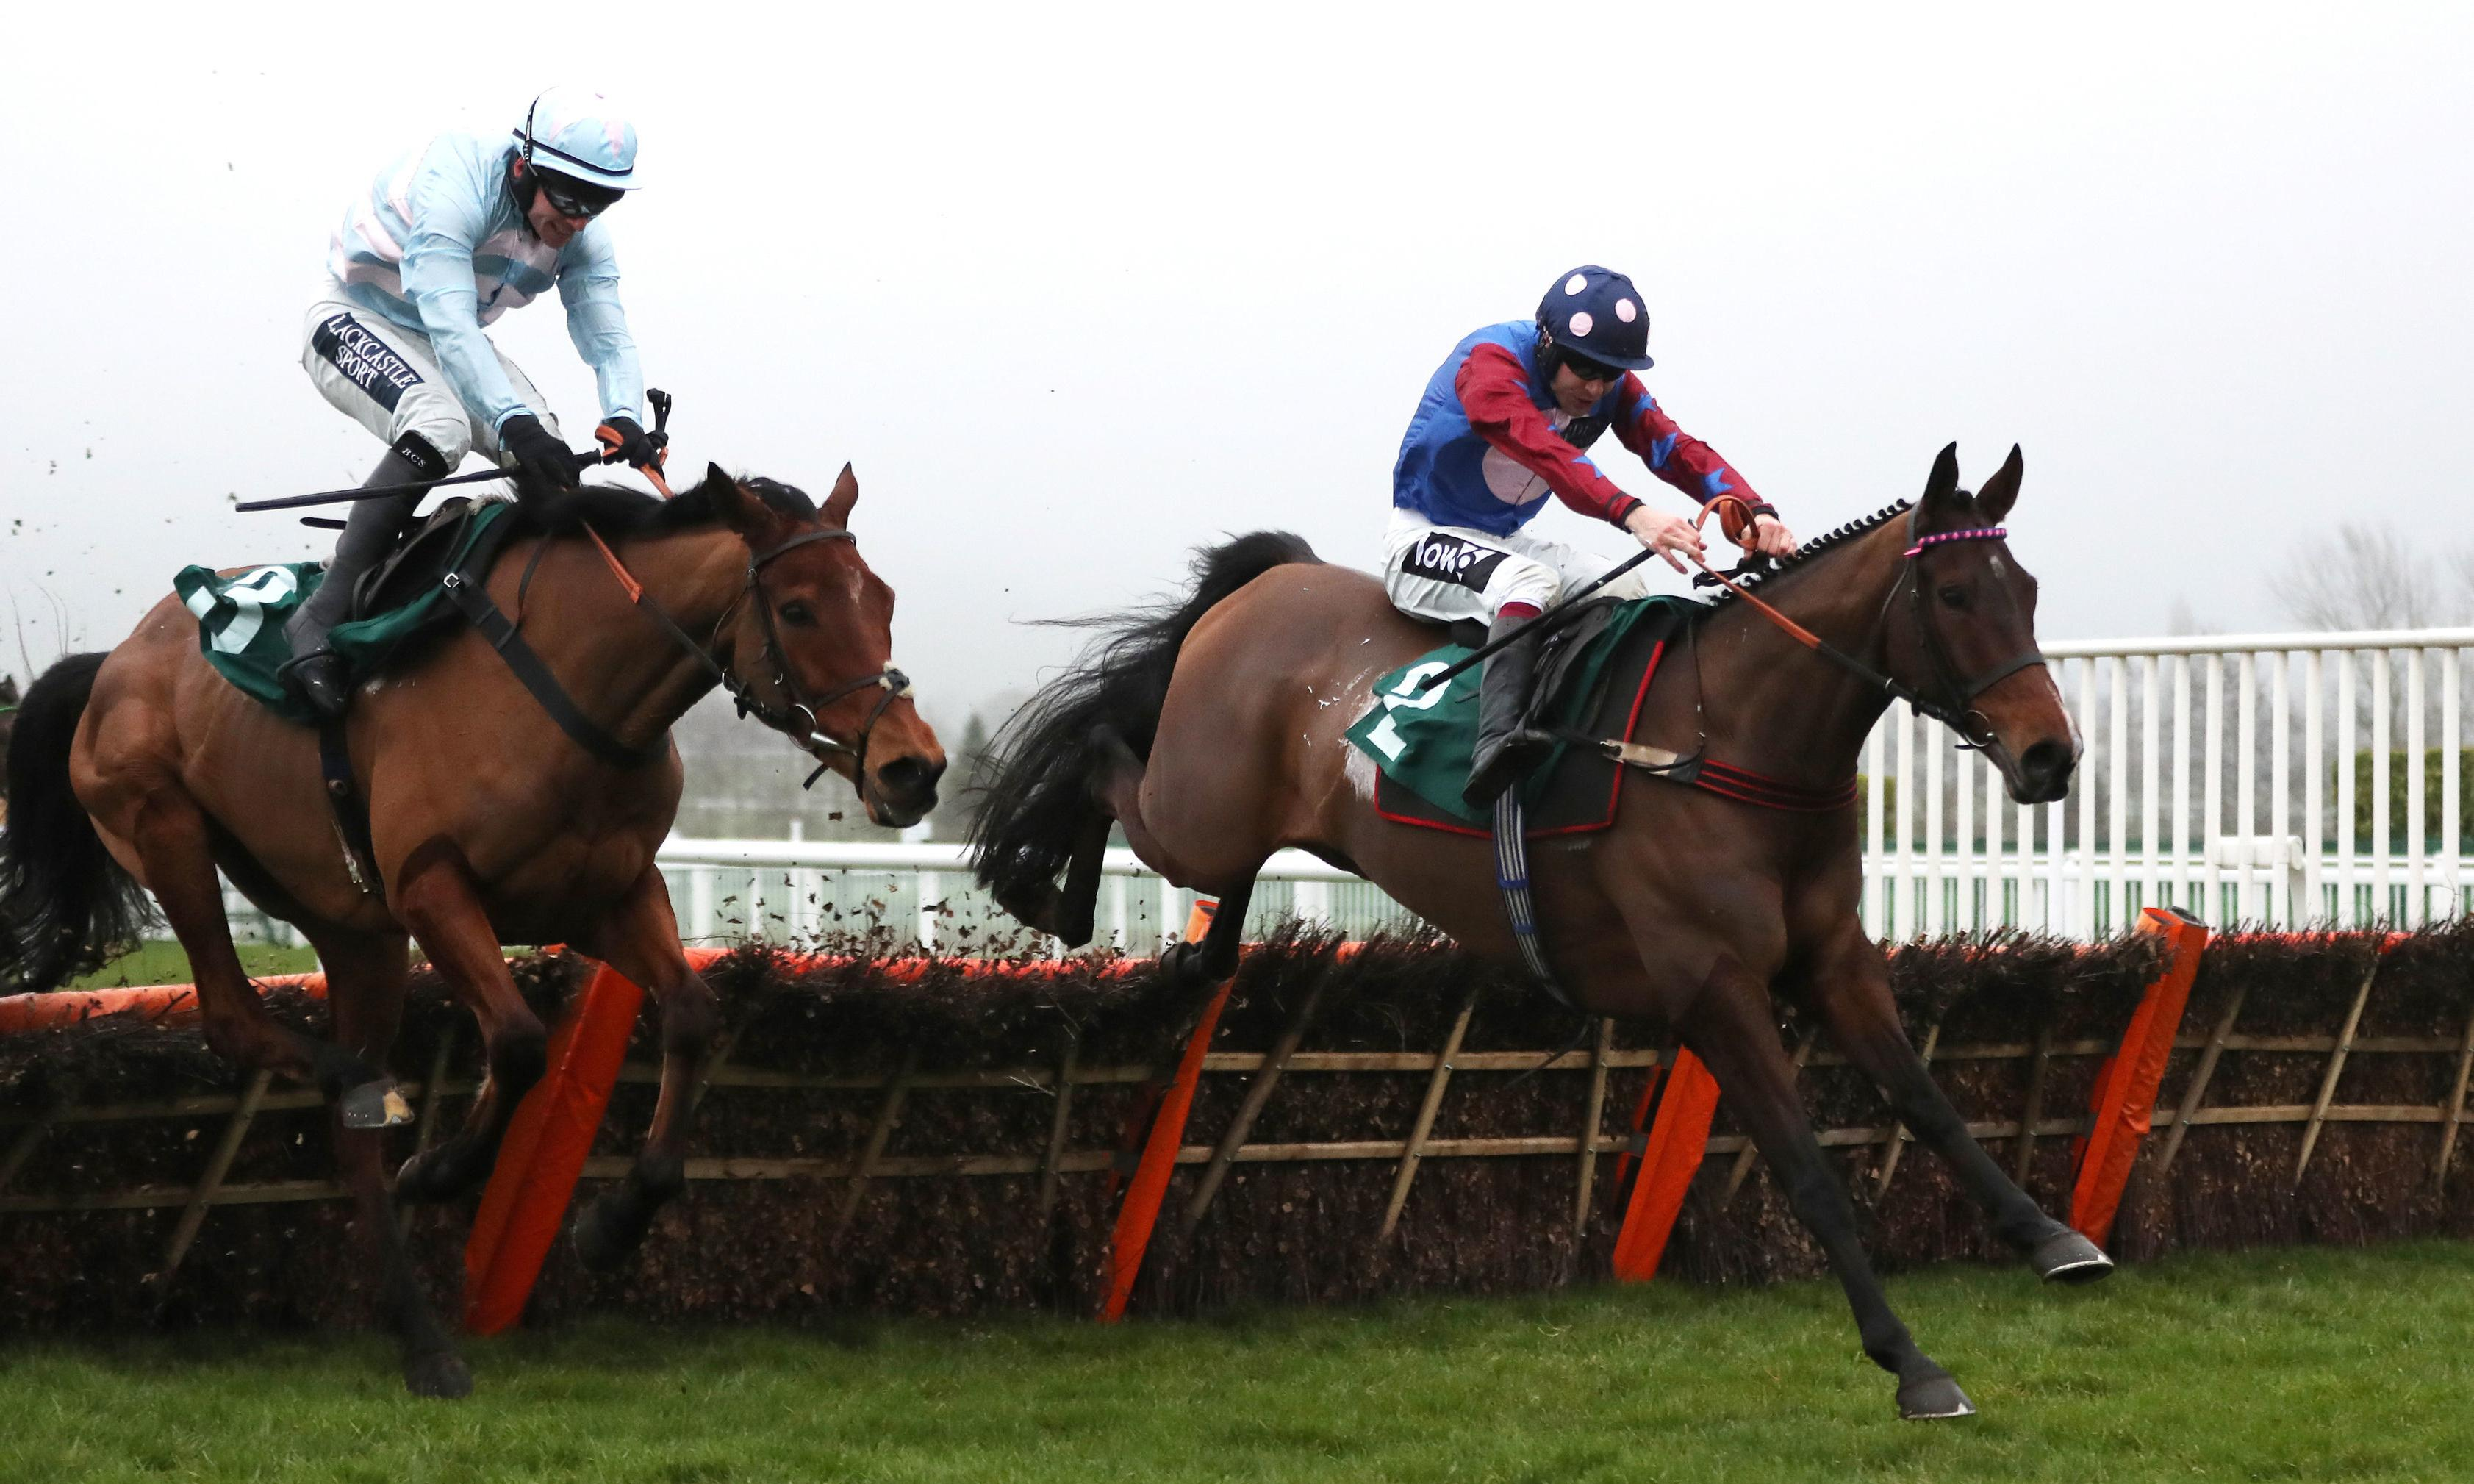 Paisley Park odds-on for Cheltenham's Stayers Hurdle after Trials Day win